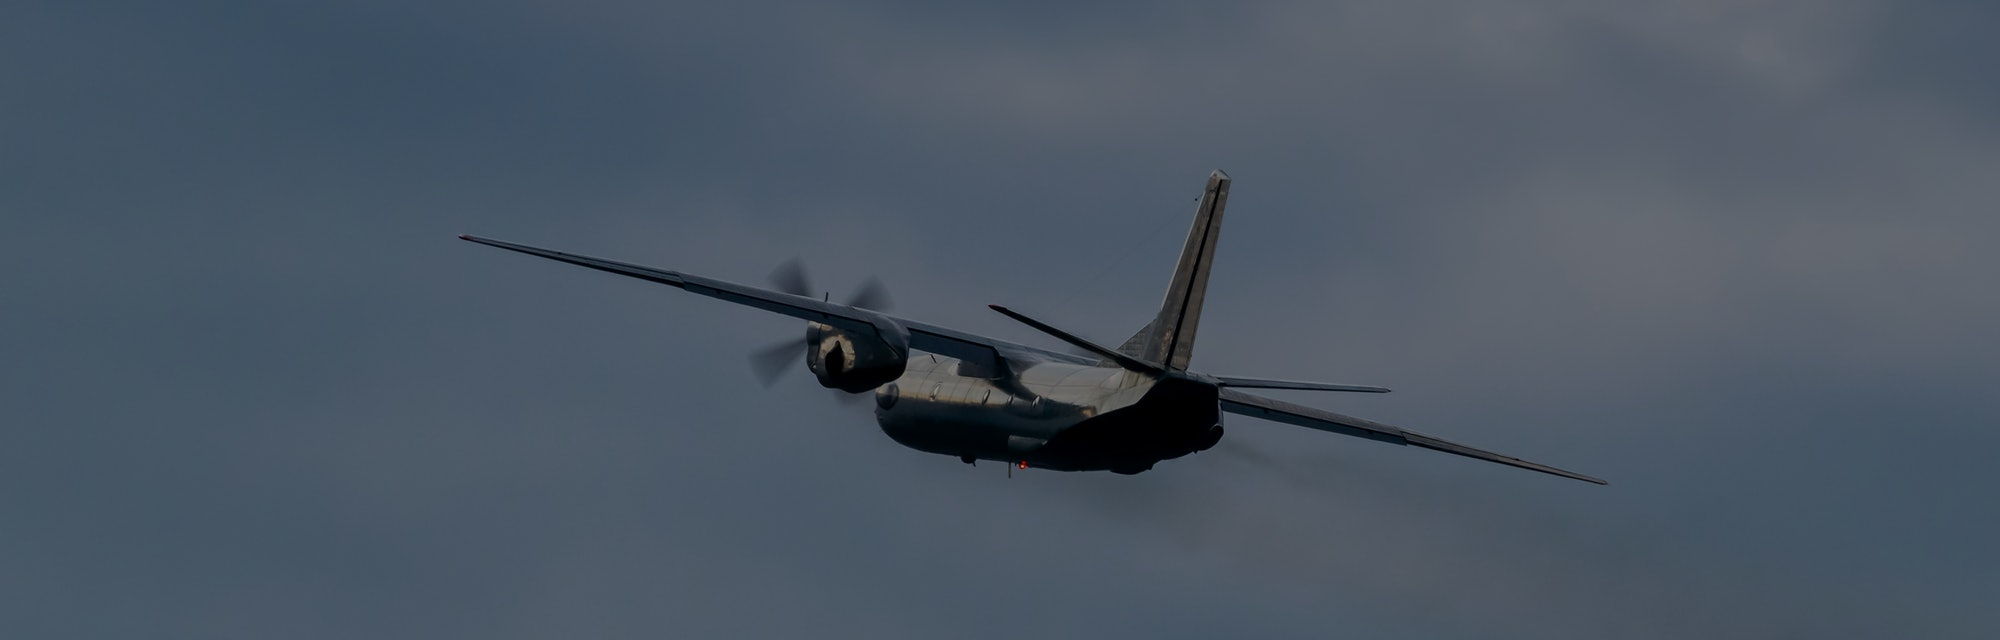 Turboprop cargo plane is rolling after takeoff on stormy sunset